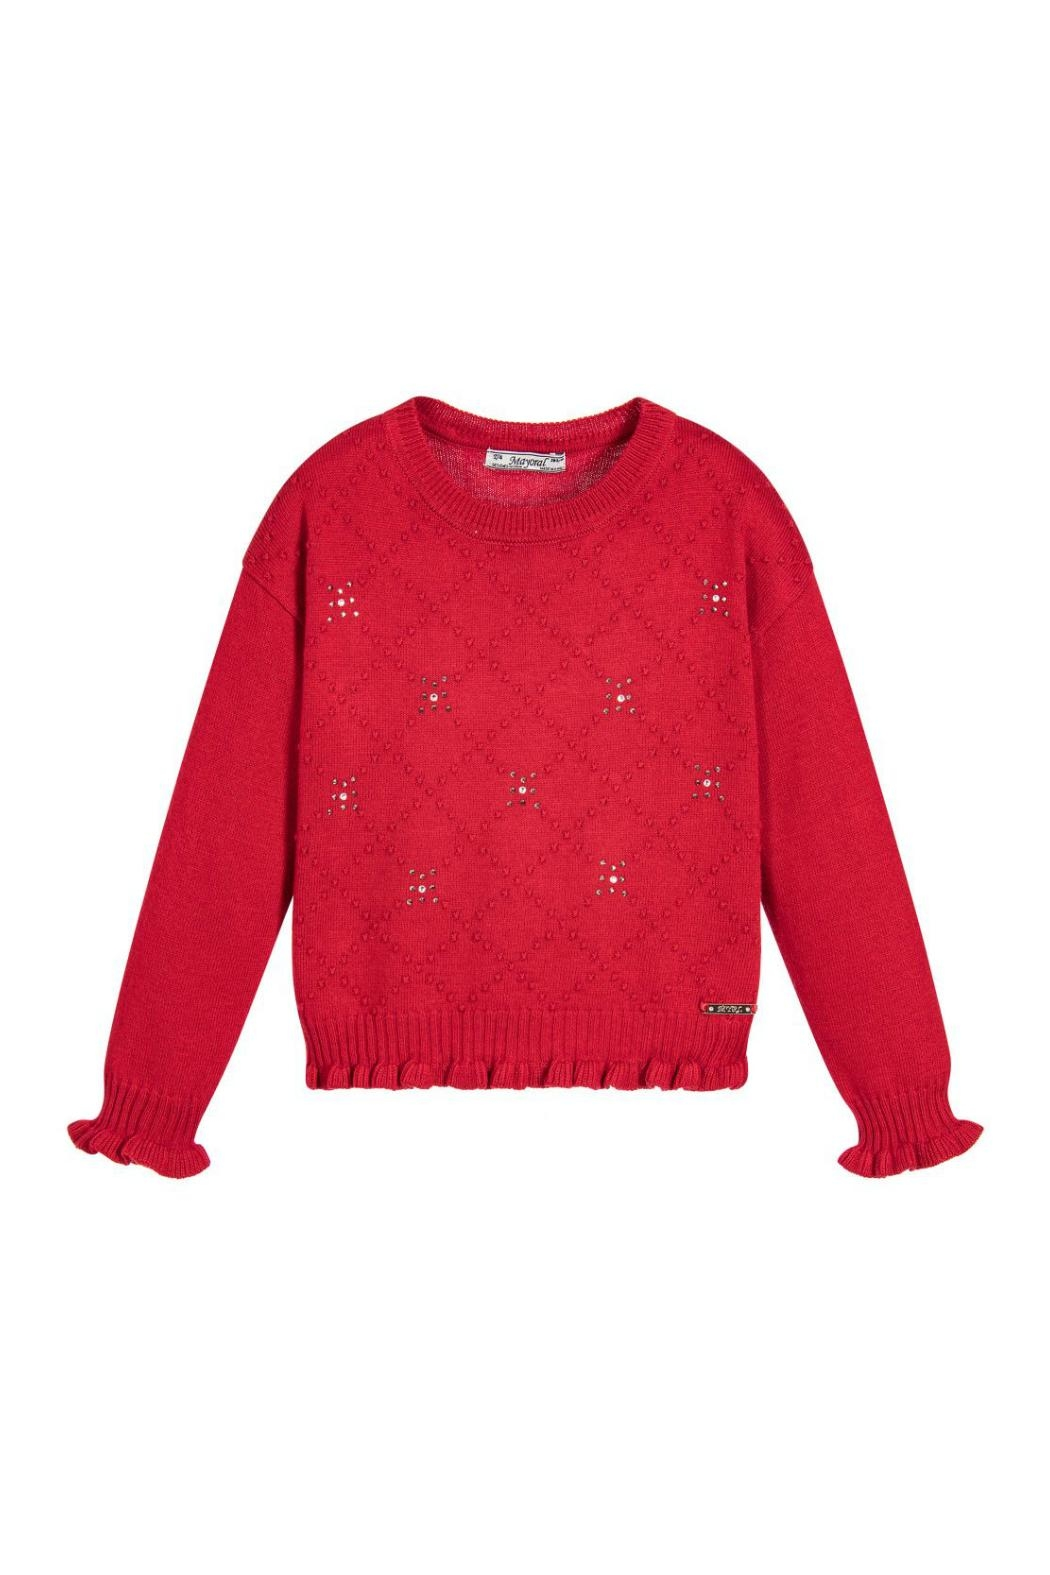 Mayoral Red Knitted Sweater - Main Image